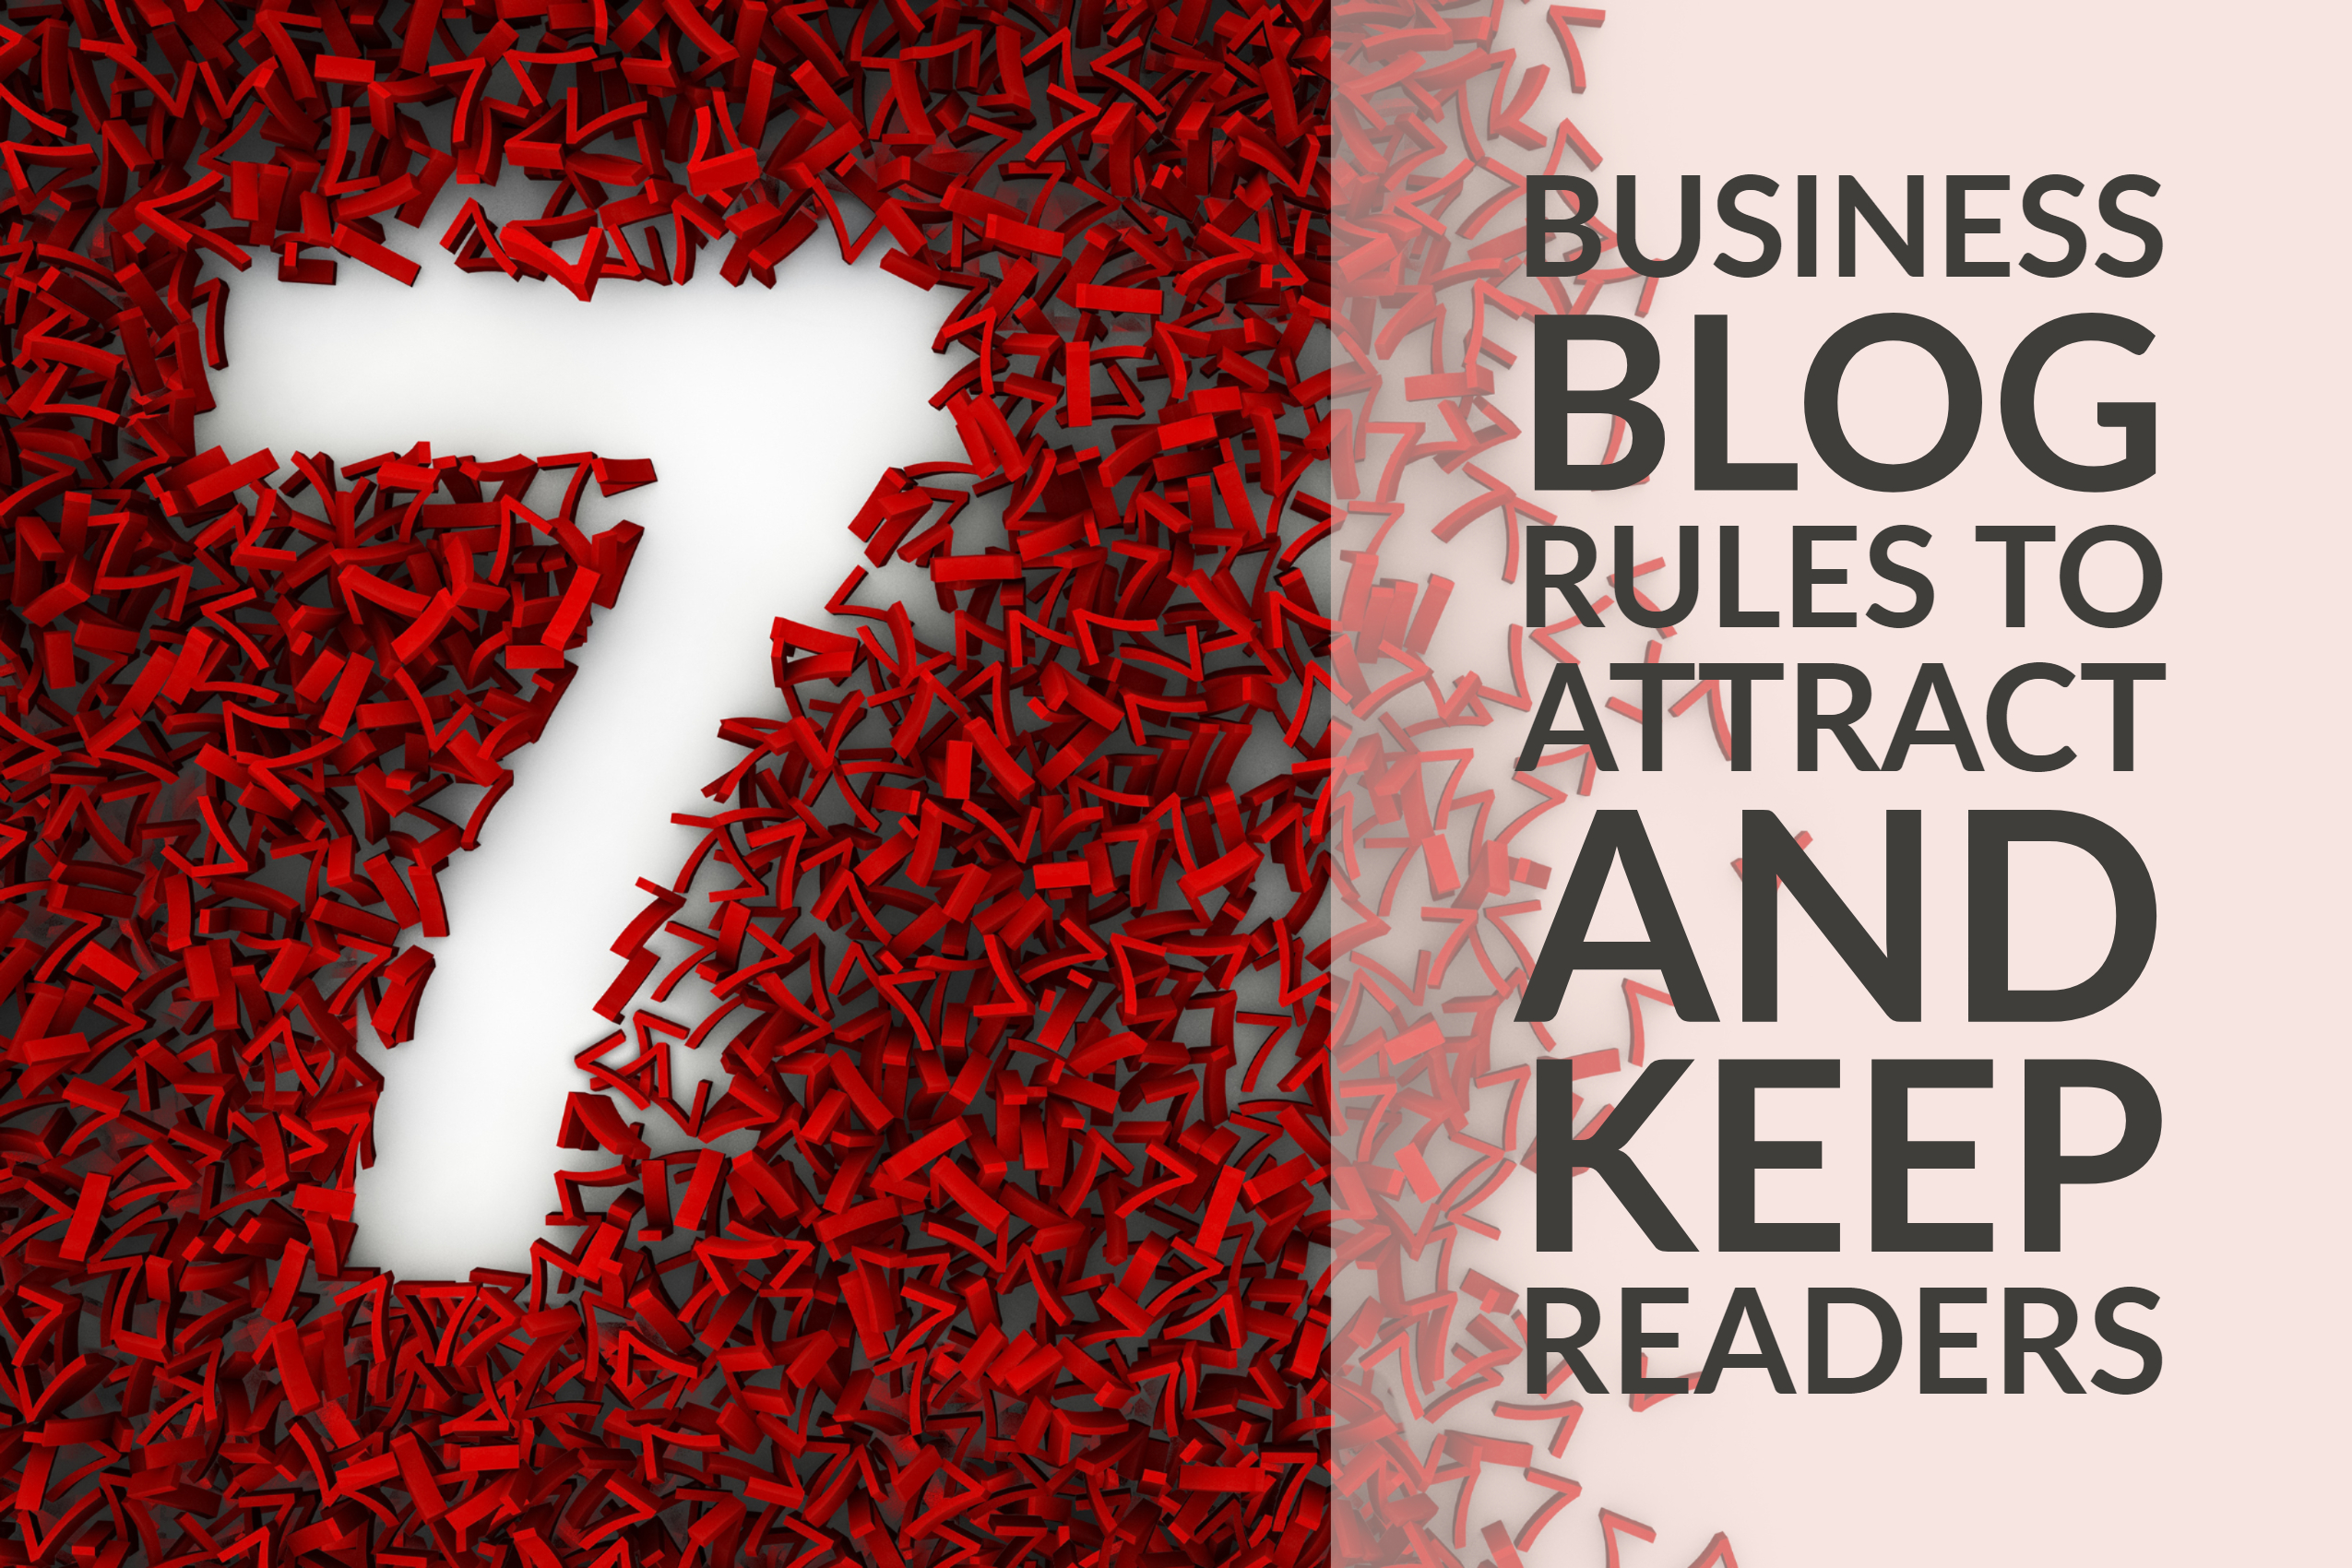 7 Business Blog Rules to Attract and Keep Readers